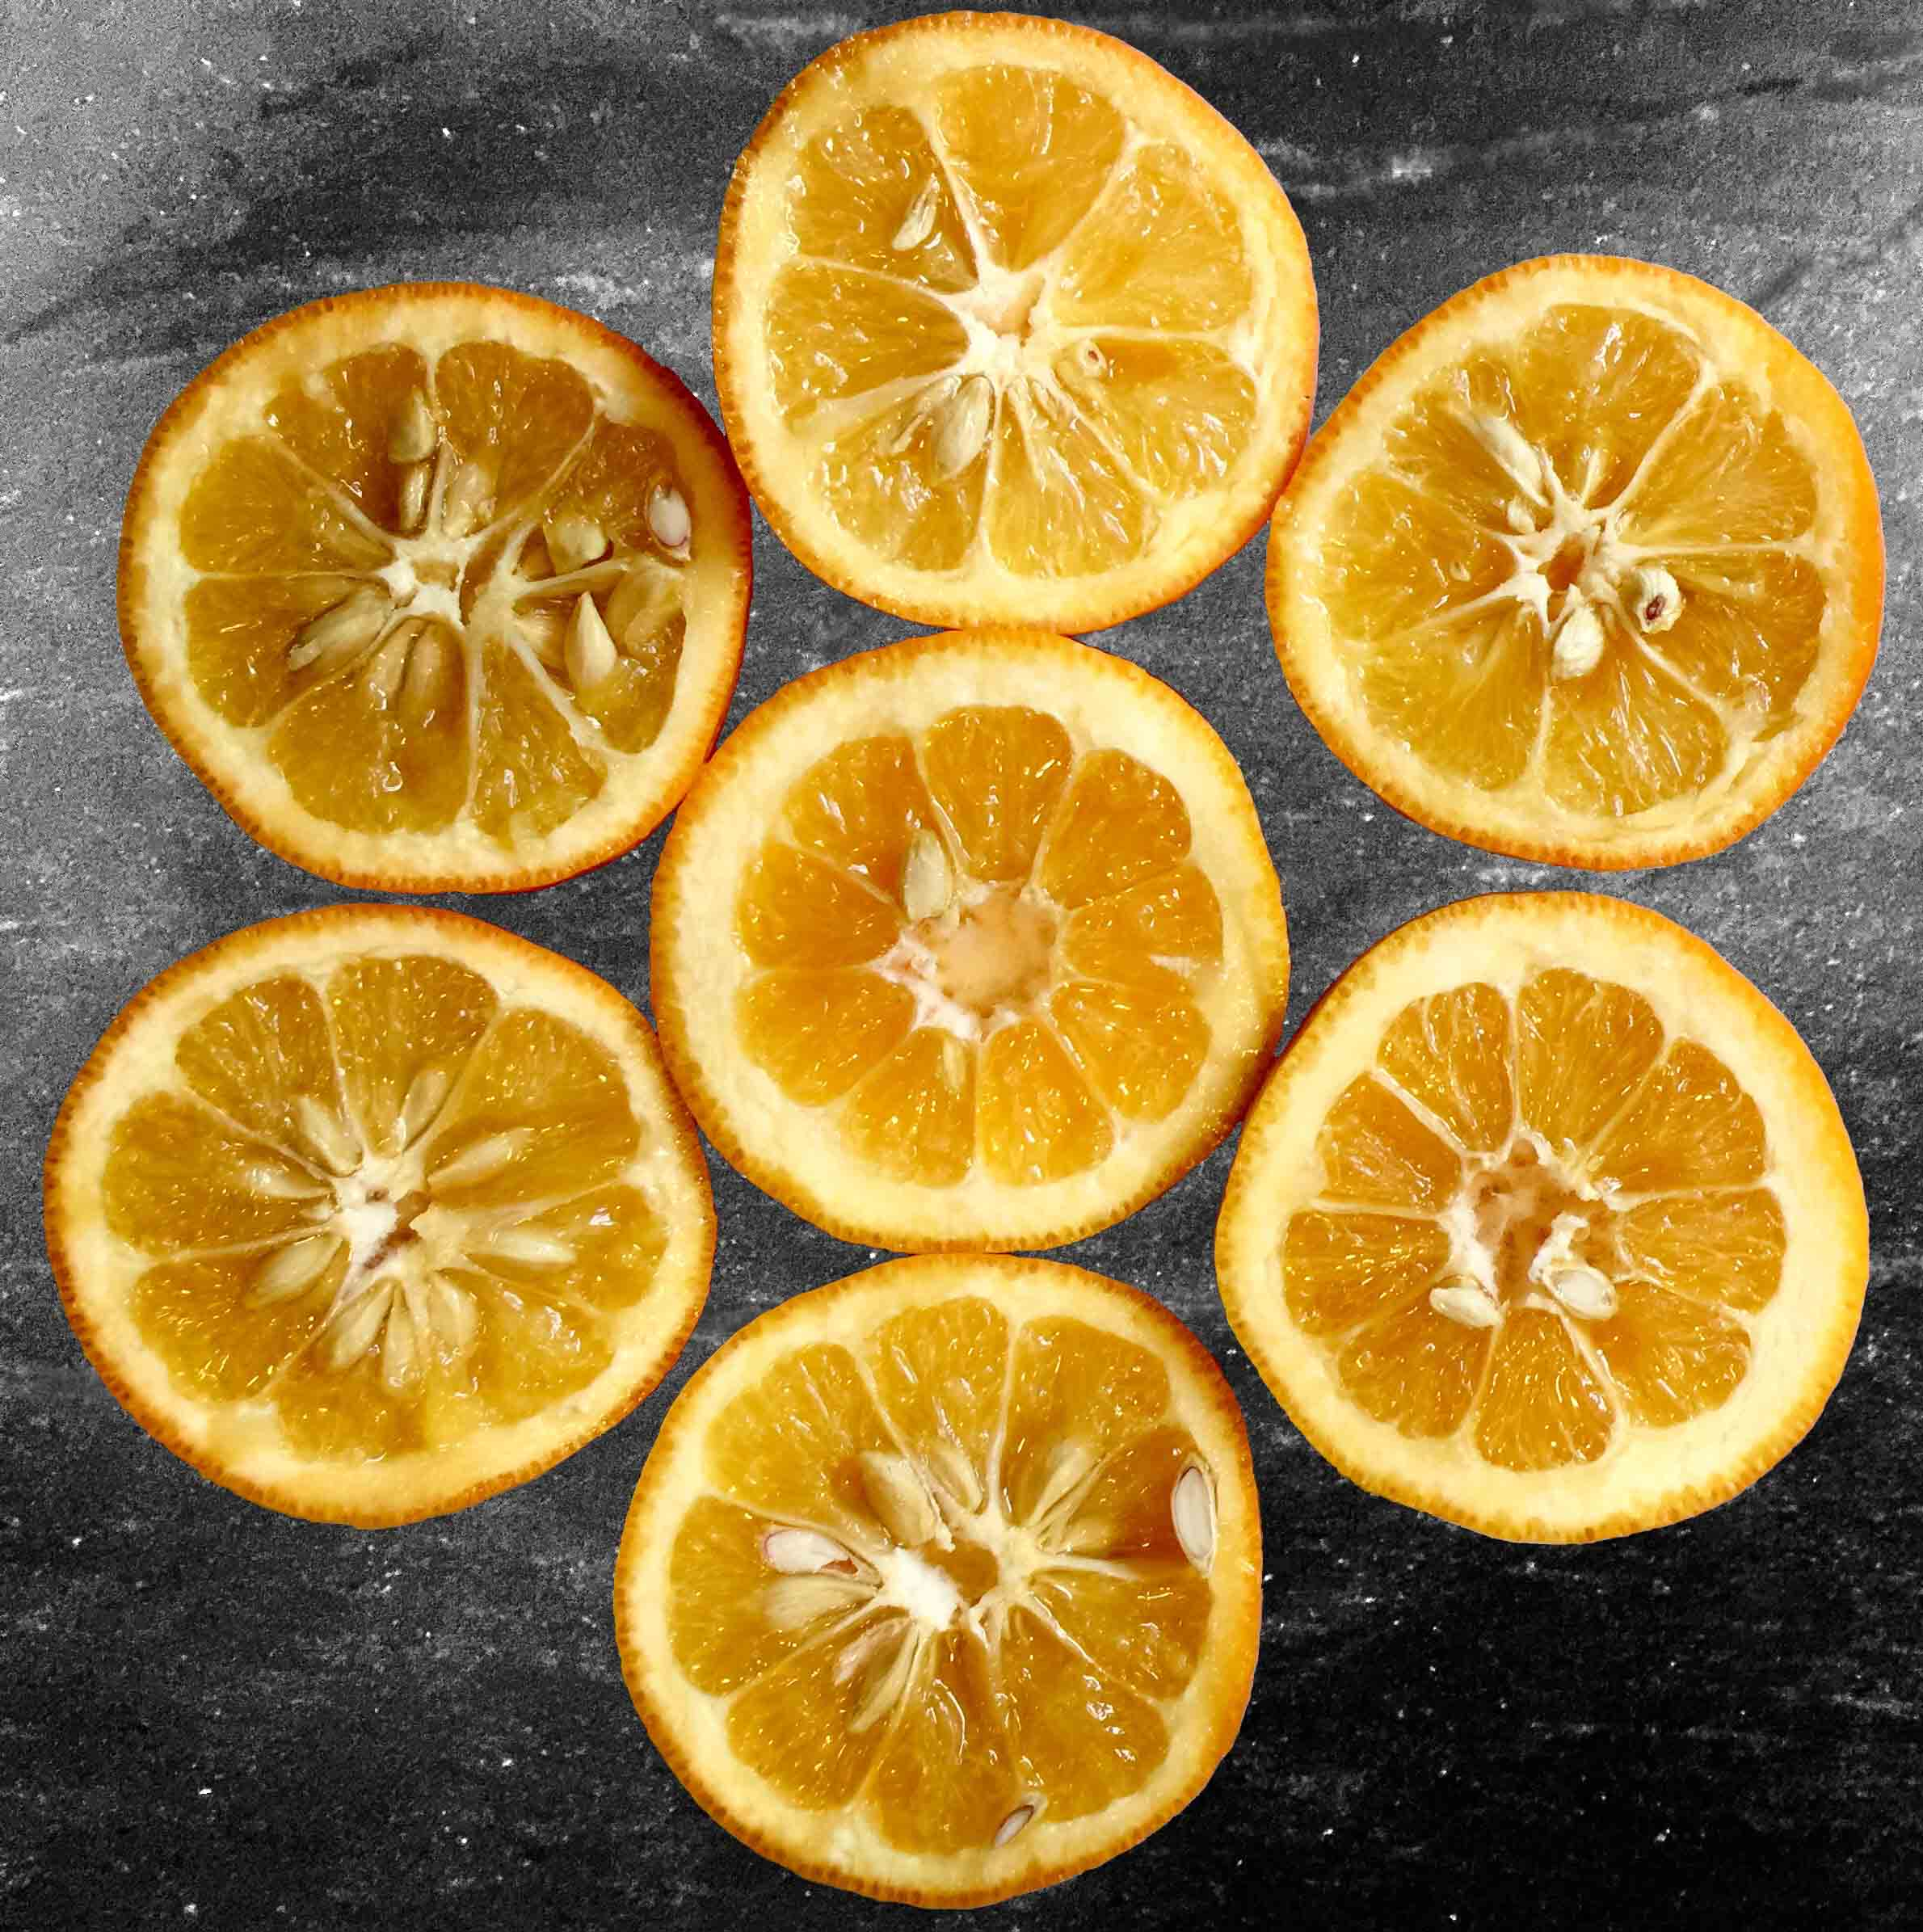 Seville oranges -  Smy Goodness Instagram